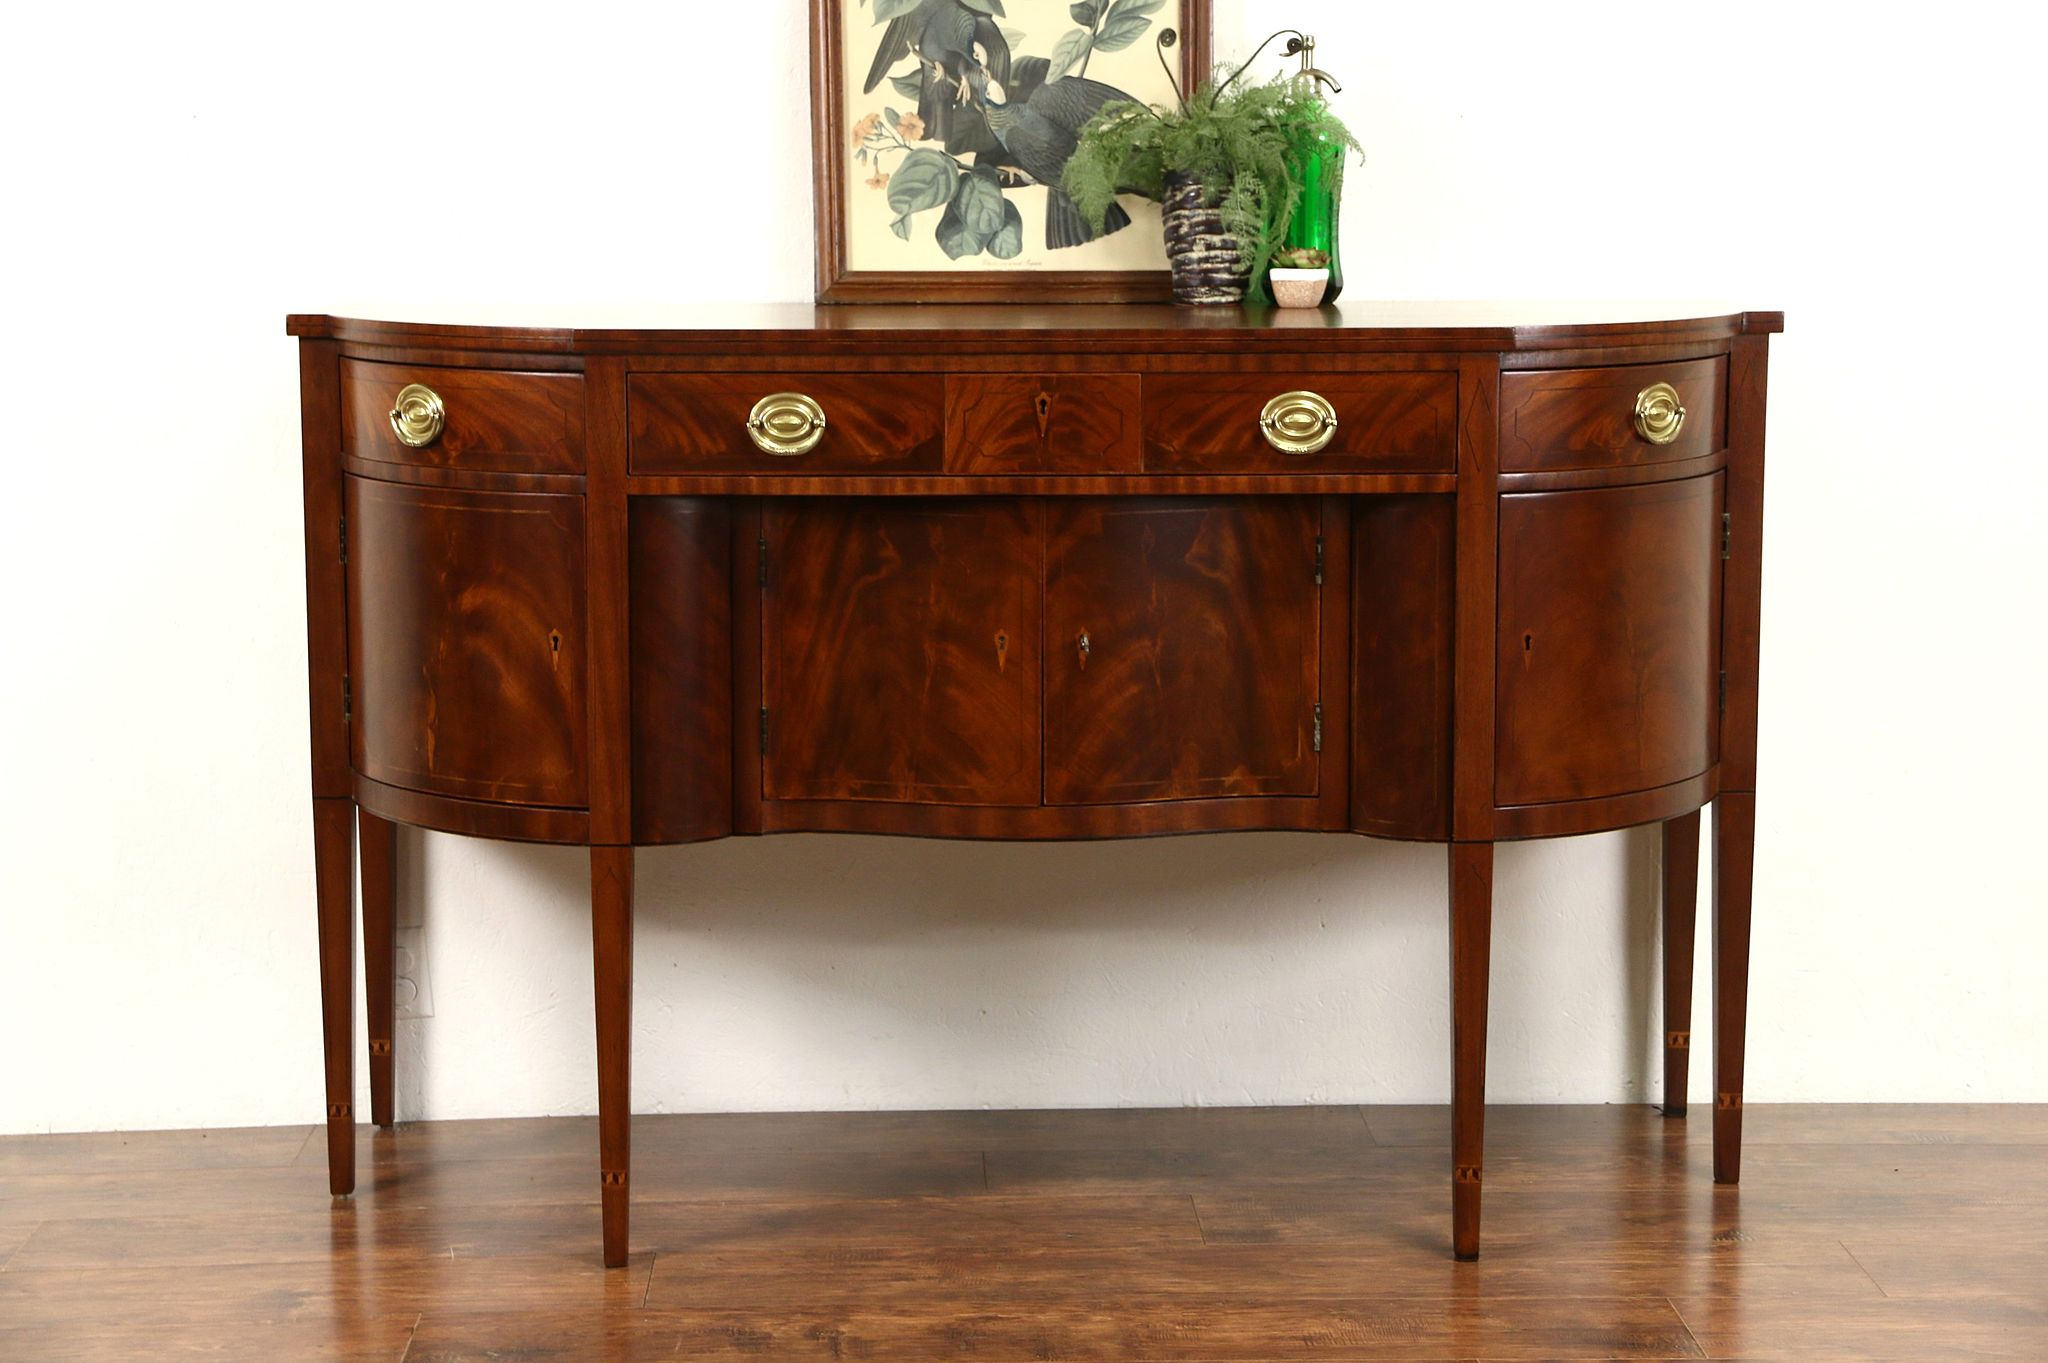 Picture of: Sold Henredon Natchez Collection Vintage Mahogany Sideboard Buffet Or Server Harp Gallery Antiques Furniture